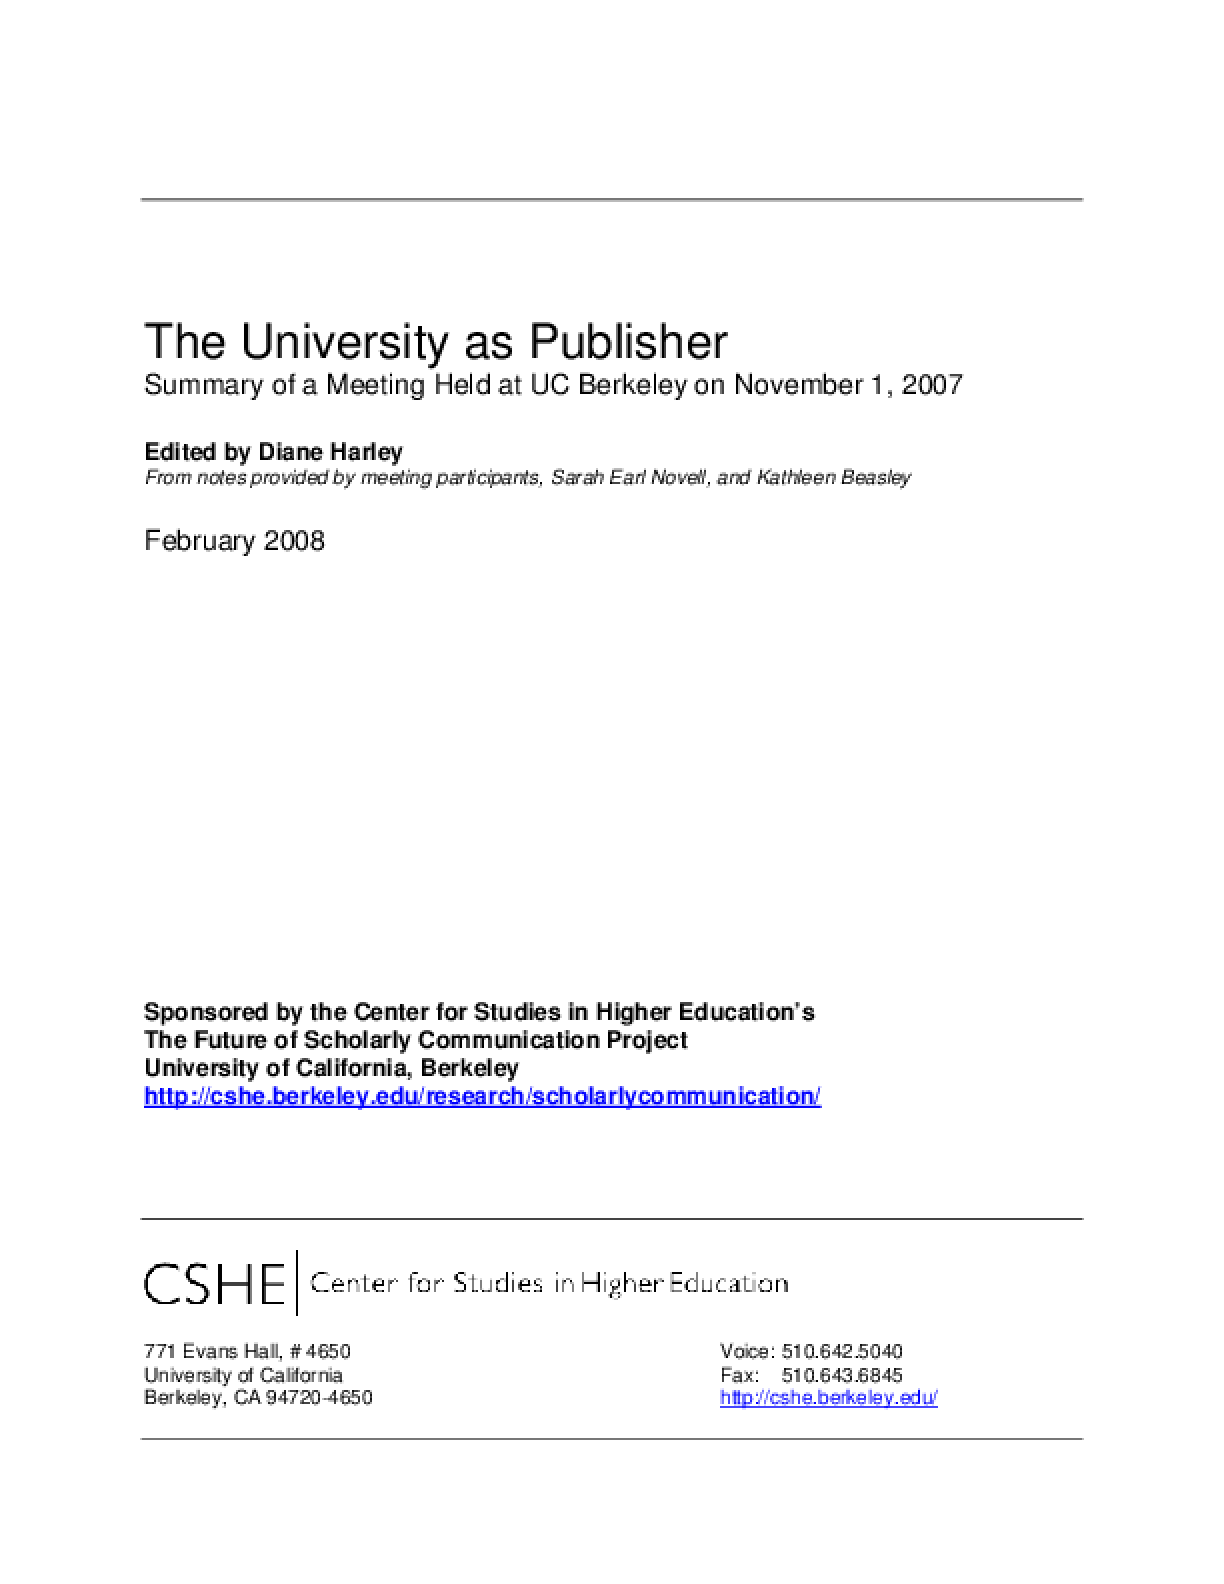 The University as Publisher: Summary of a Meeting Held at UC Berkeley on November 1, 2007